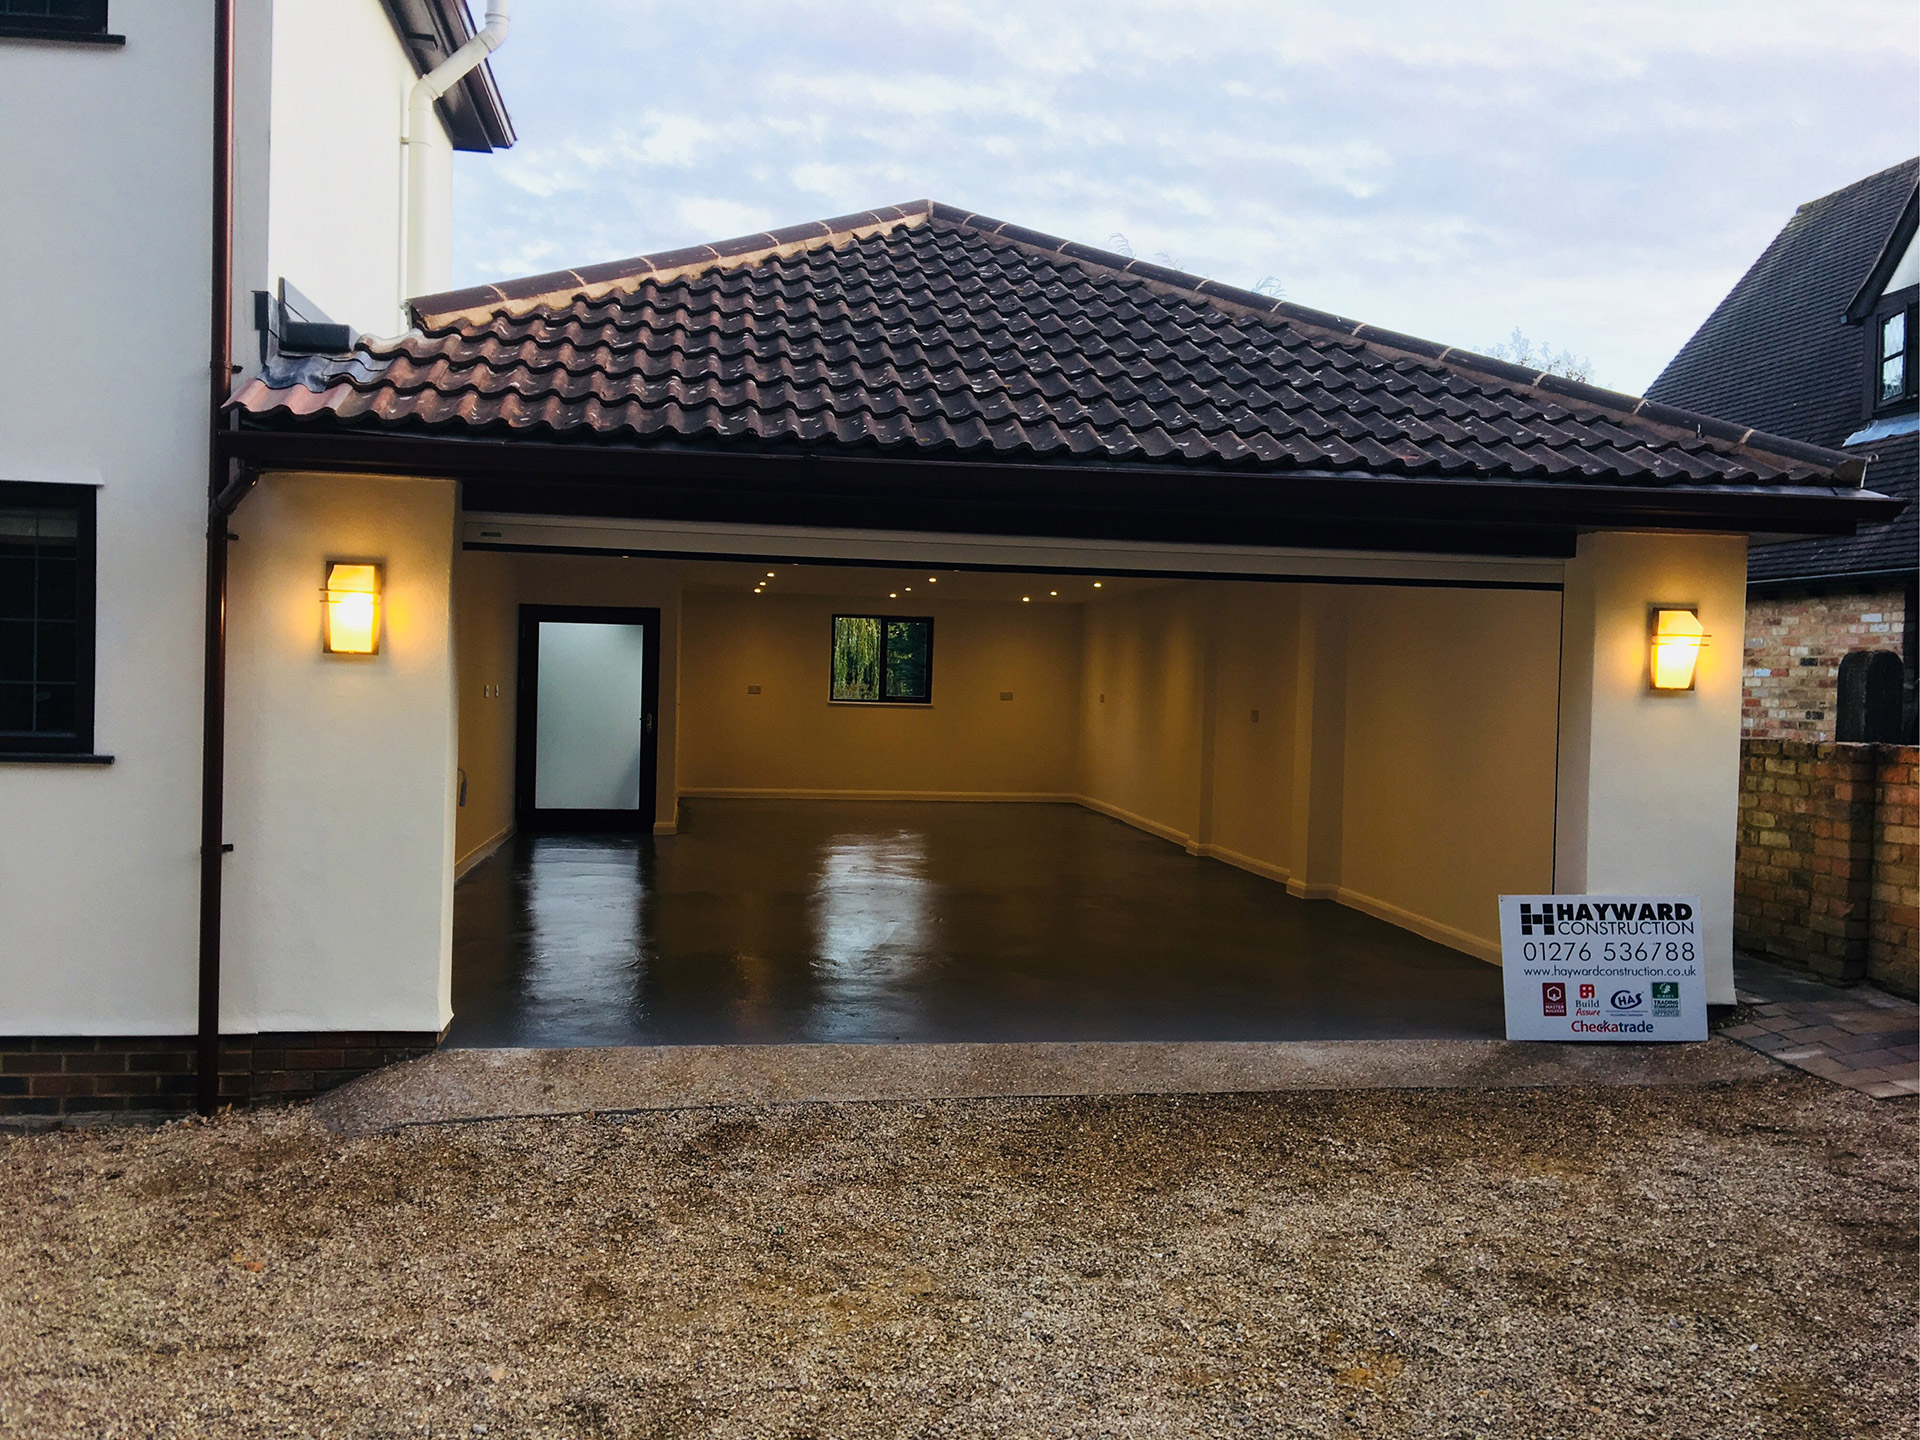 Garage Extension In Wentworth Hayward Construction